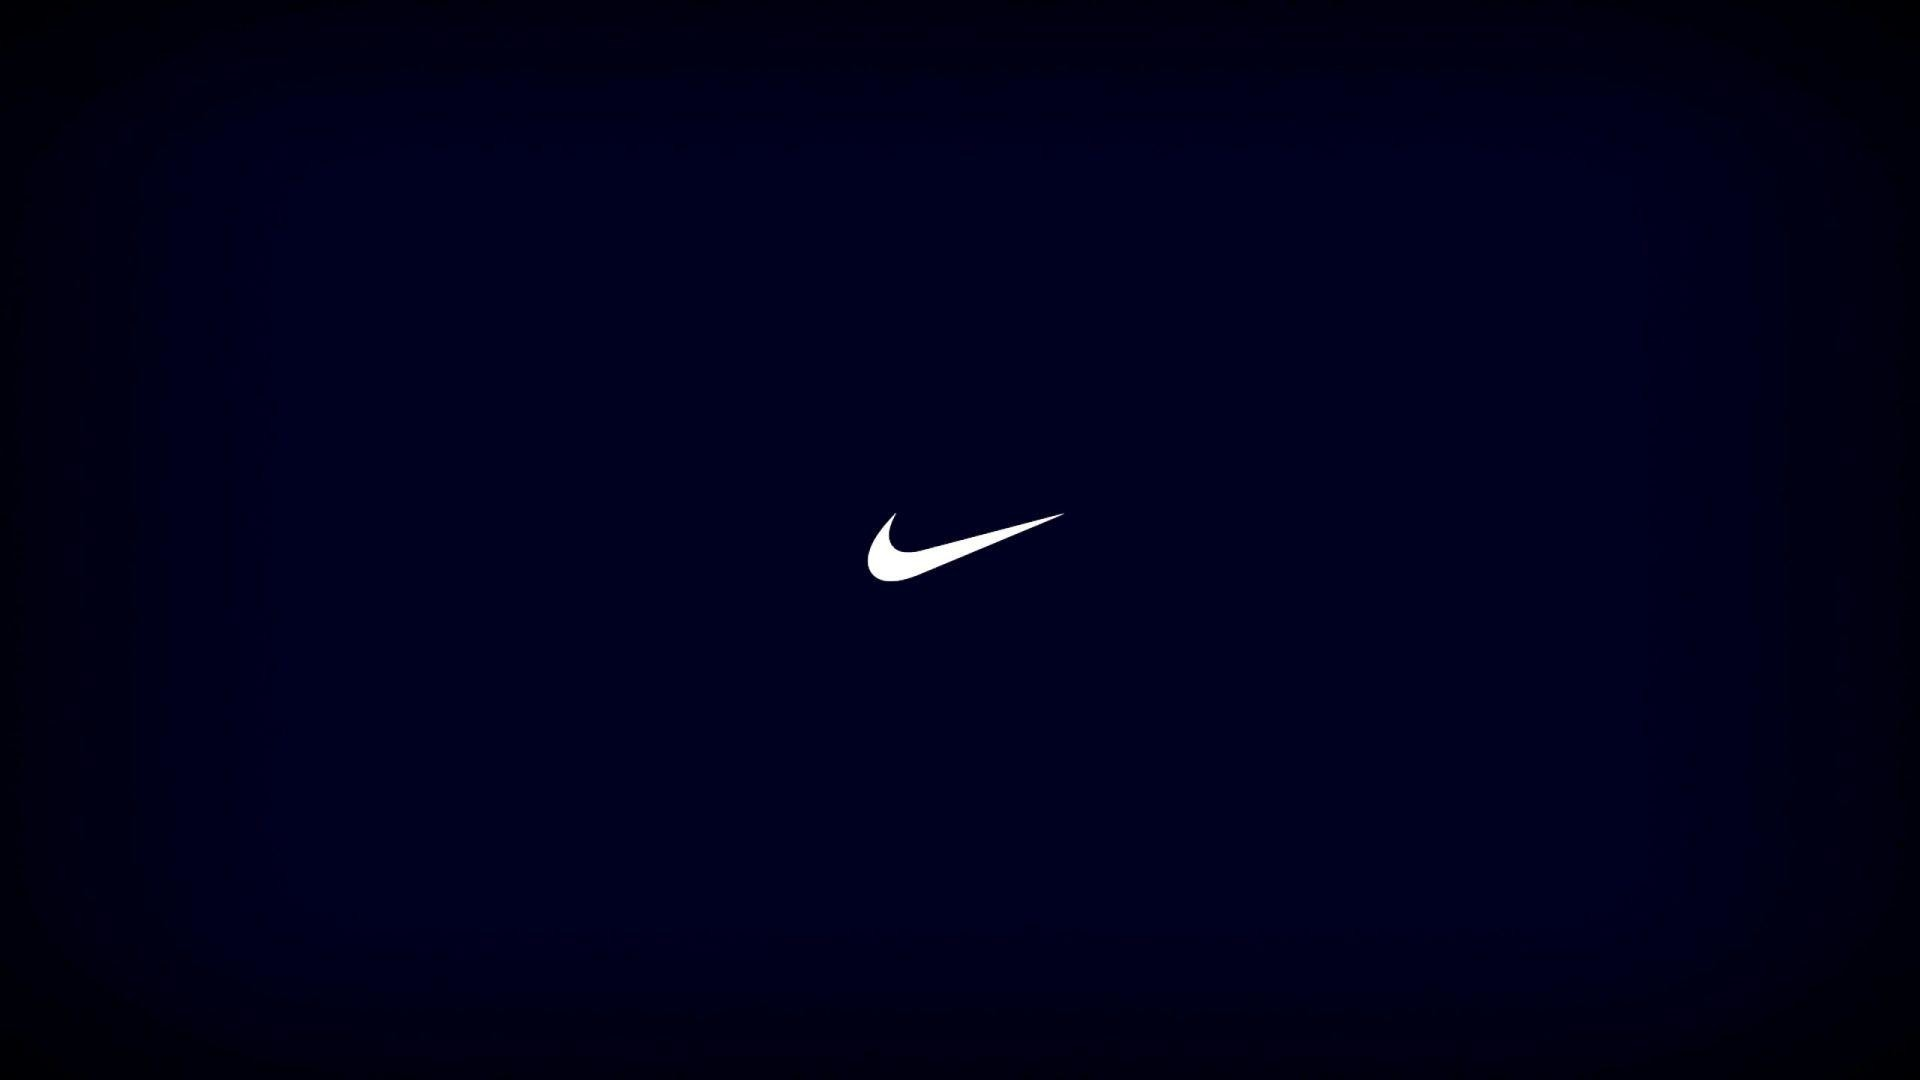 1920x1080 Nike Logo Drop Water Wallpaper HD #5843 Wallpaper | High .